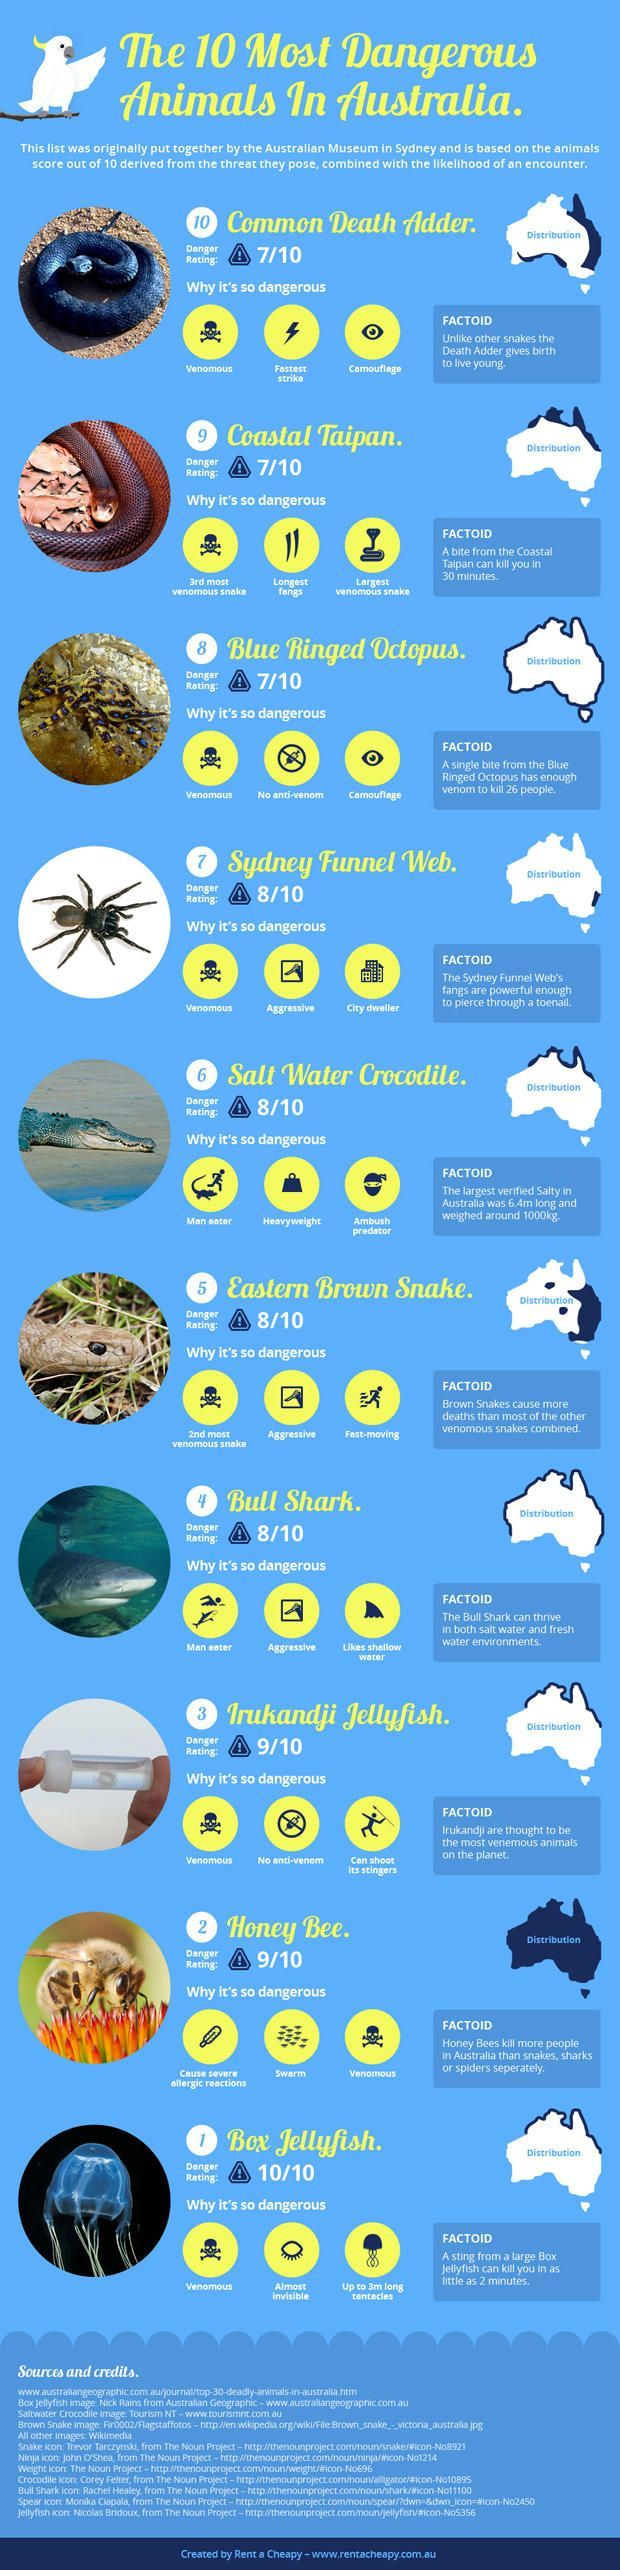 Infographic: Australia's 10 Most Dangerous Animals | Mental Floss